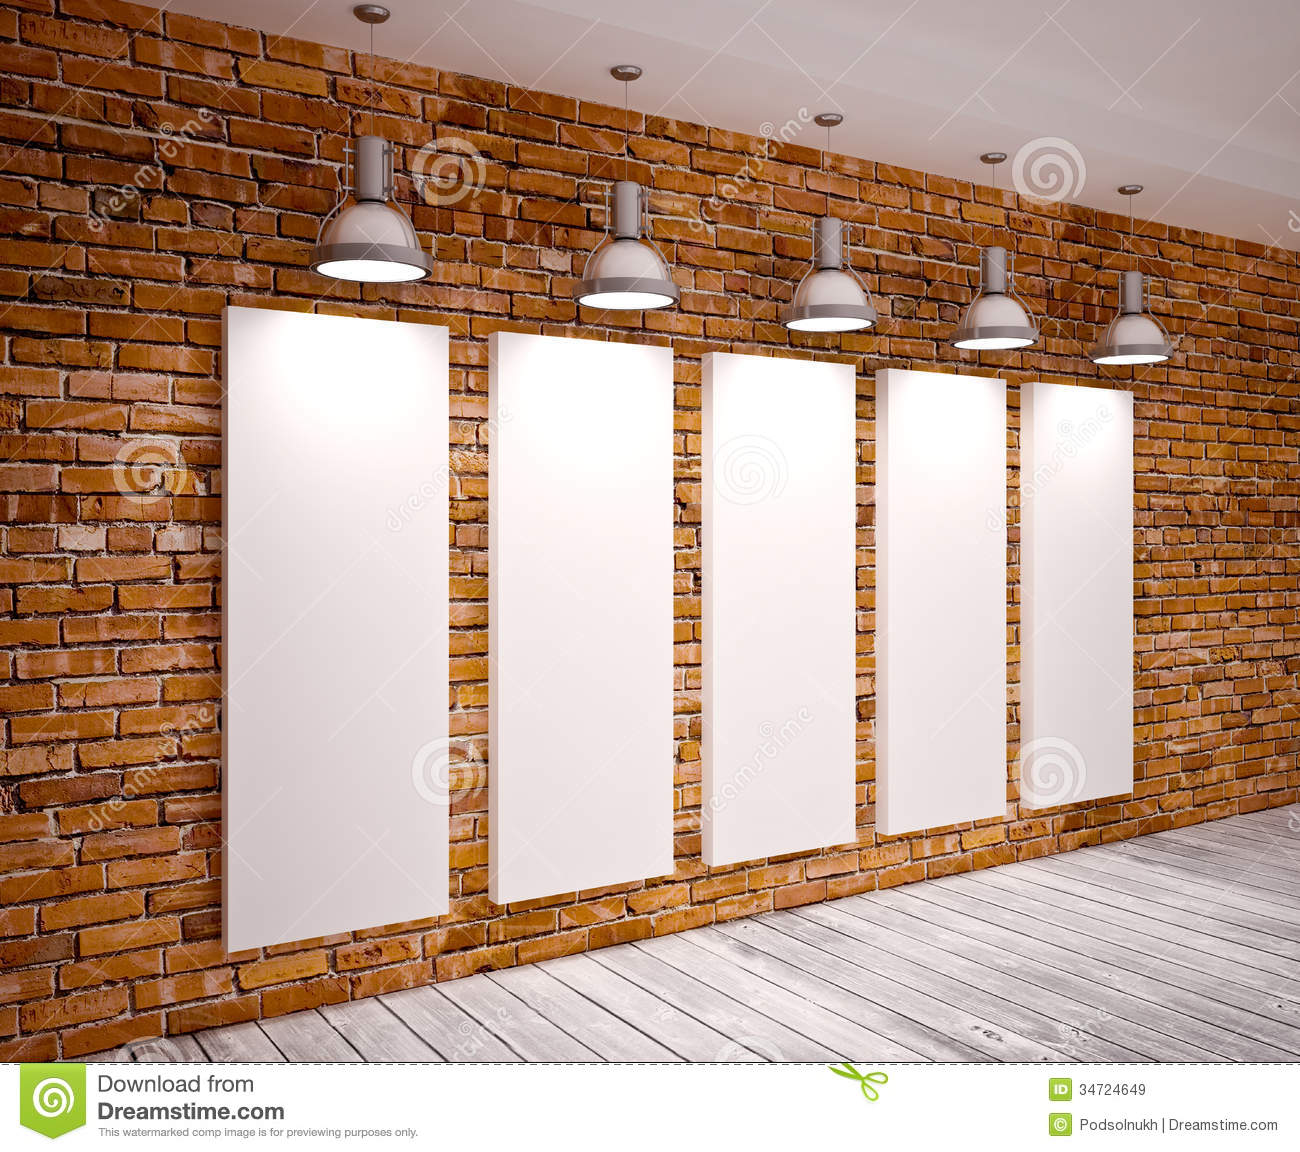 Banner On Wall Royalty Free Stock Images - Image: 34724649